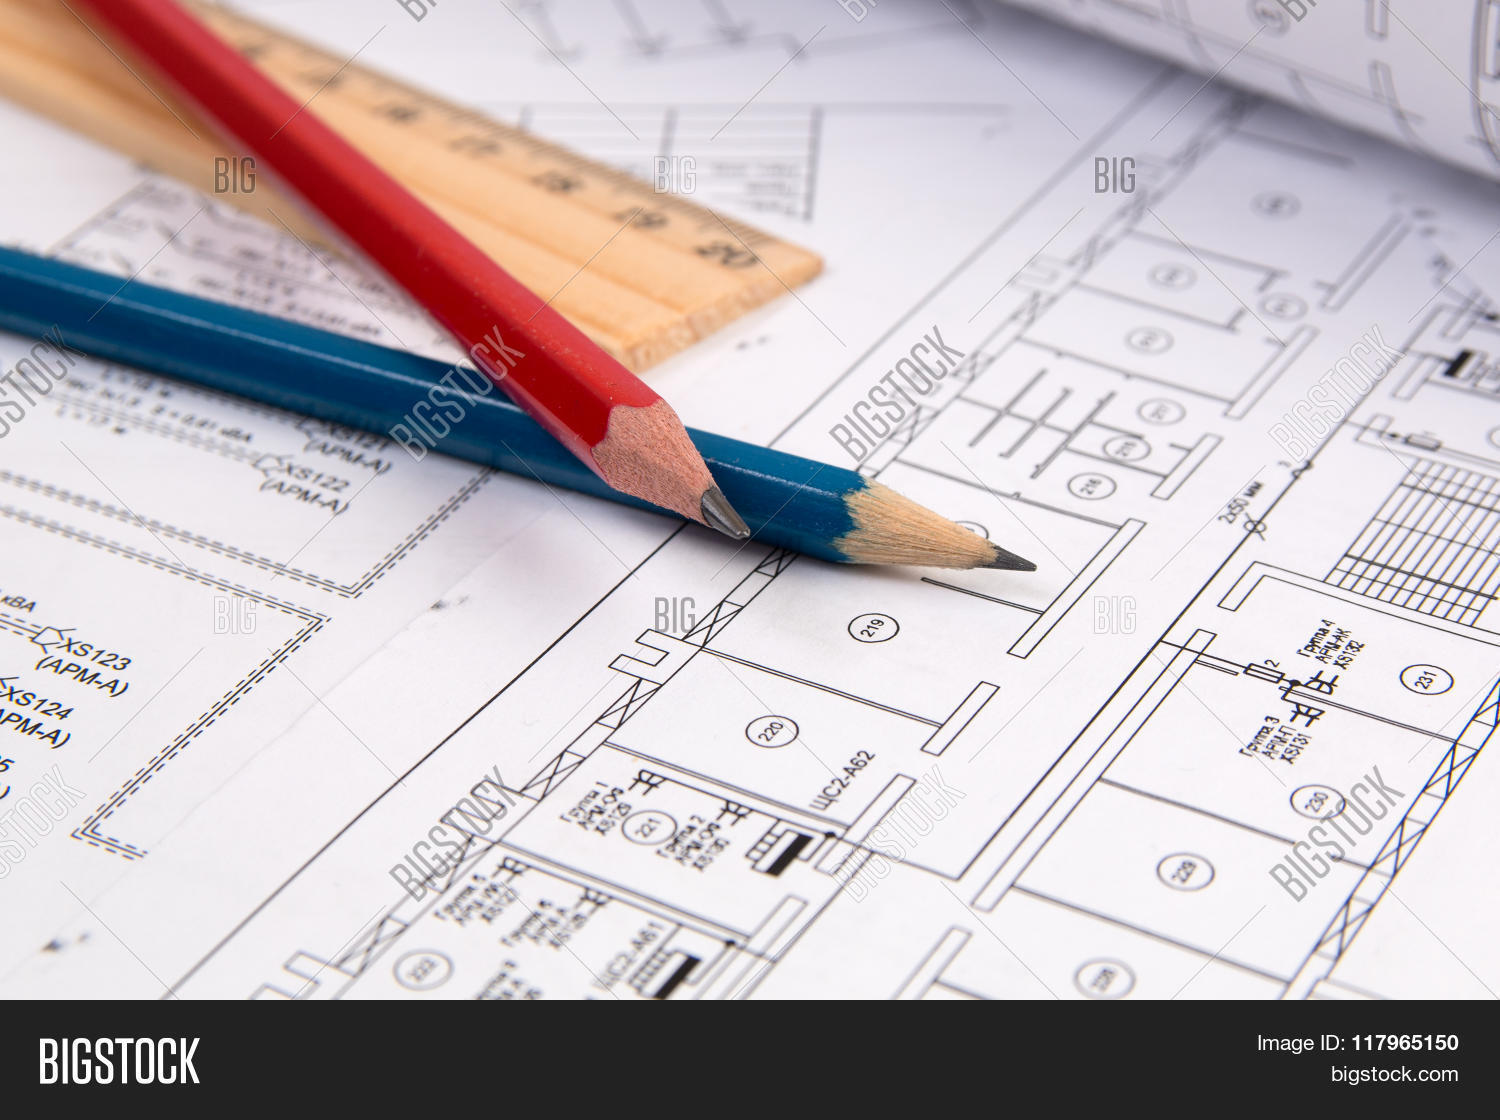 Electrical Engineering Image Photo Free Trial Bigstock Diagram Drawings Printing Pencil And Ruler